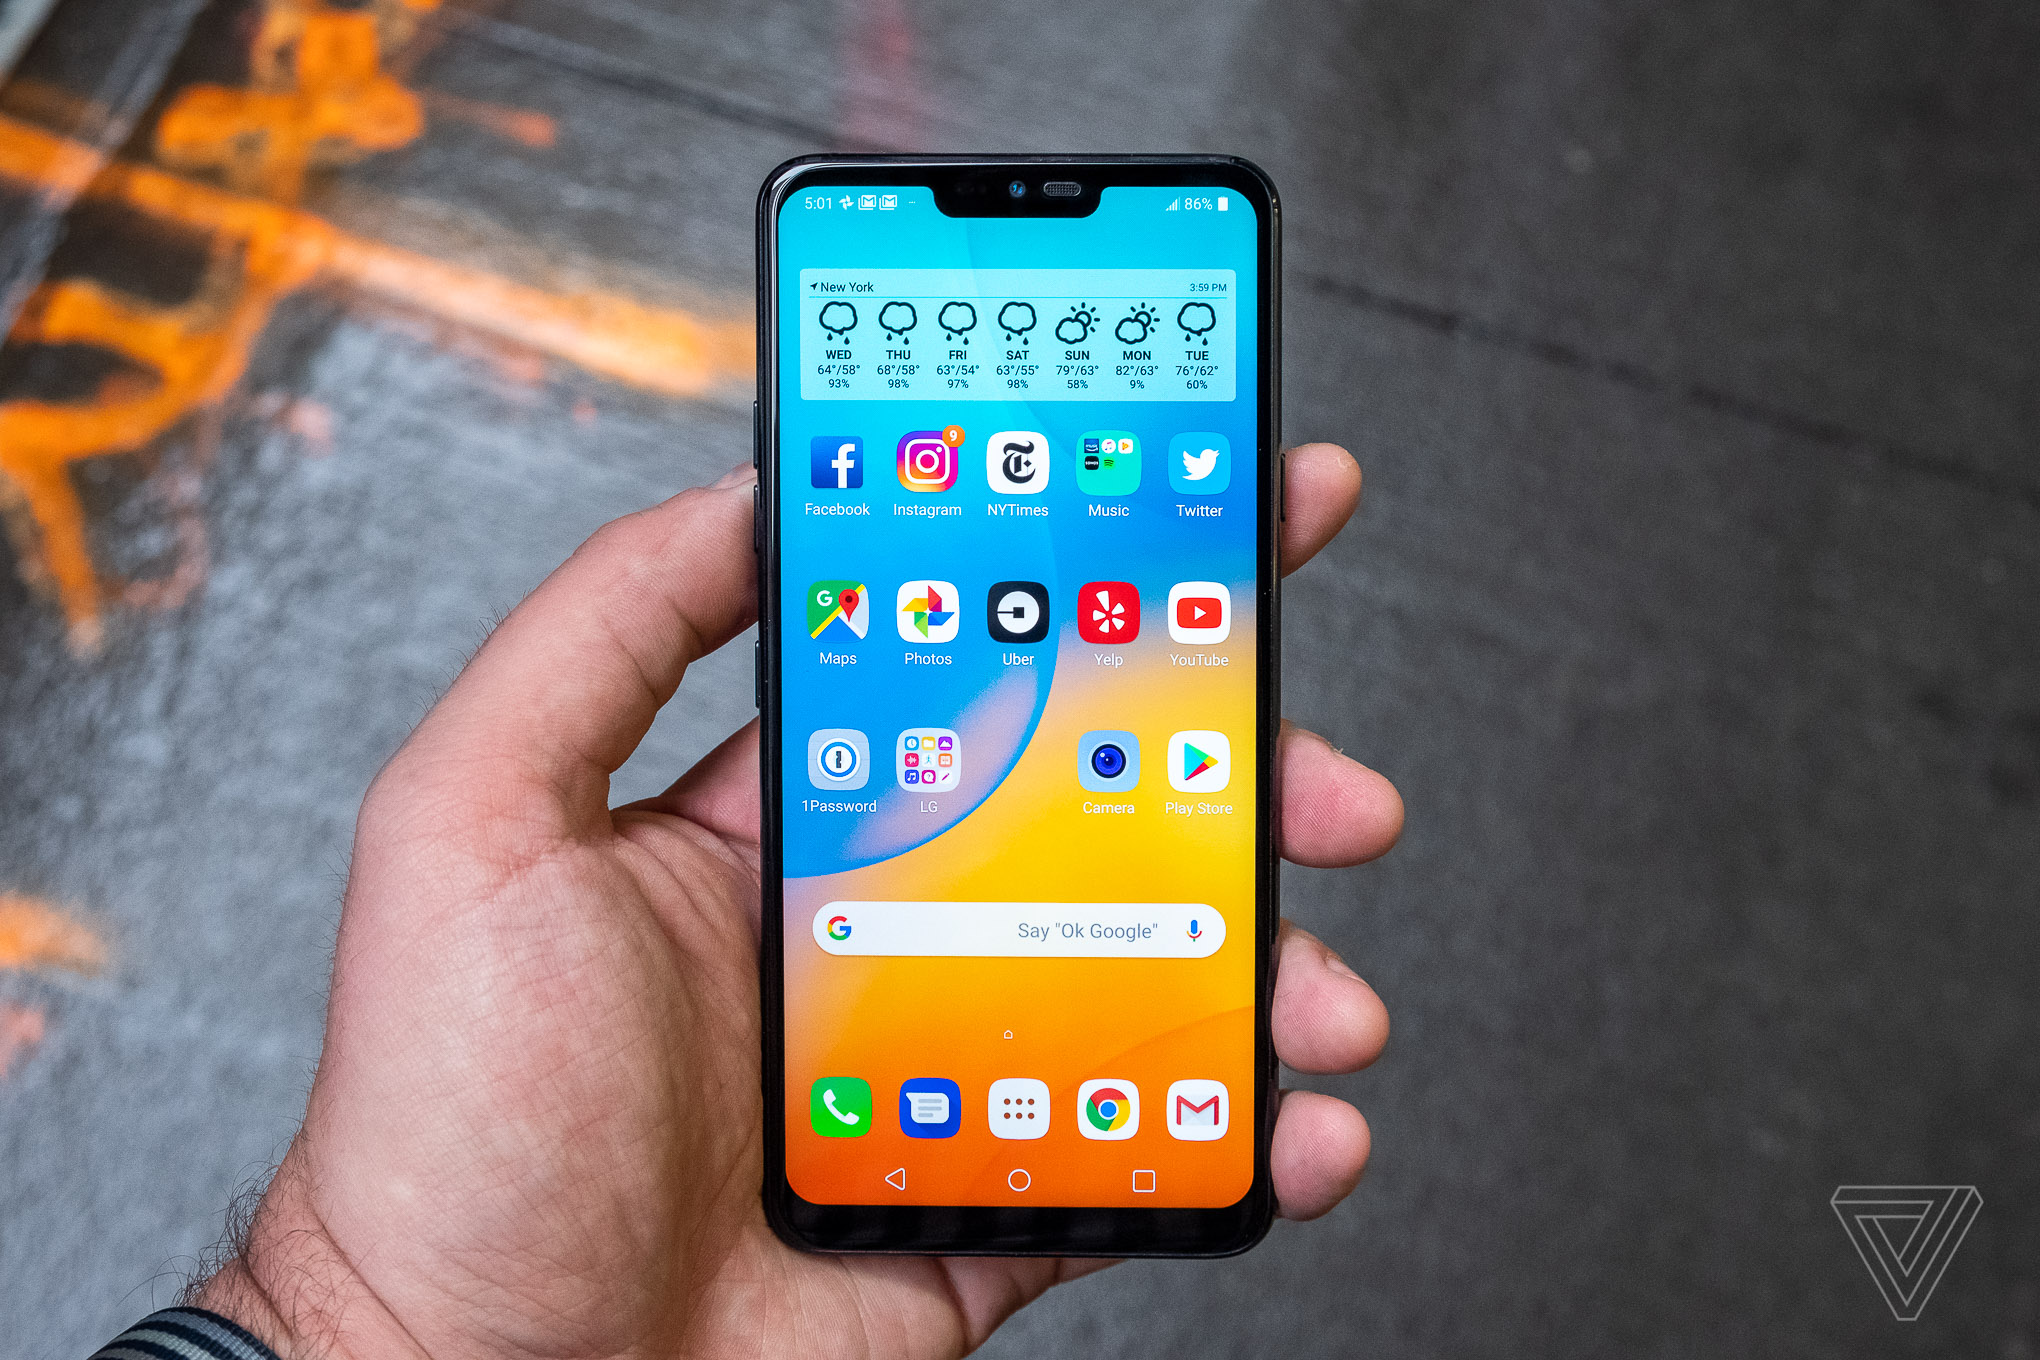 LG G7 ThinQ review: a big price for small improvements - The